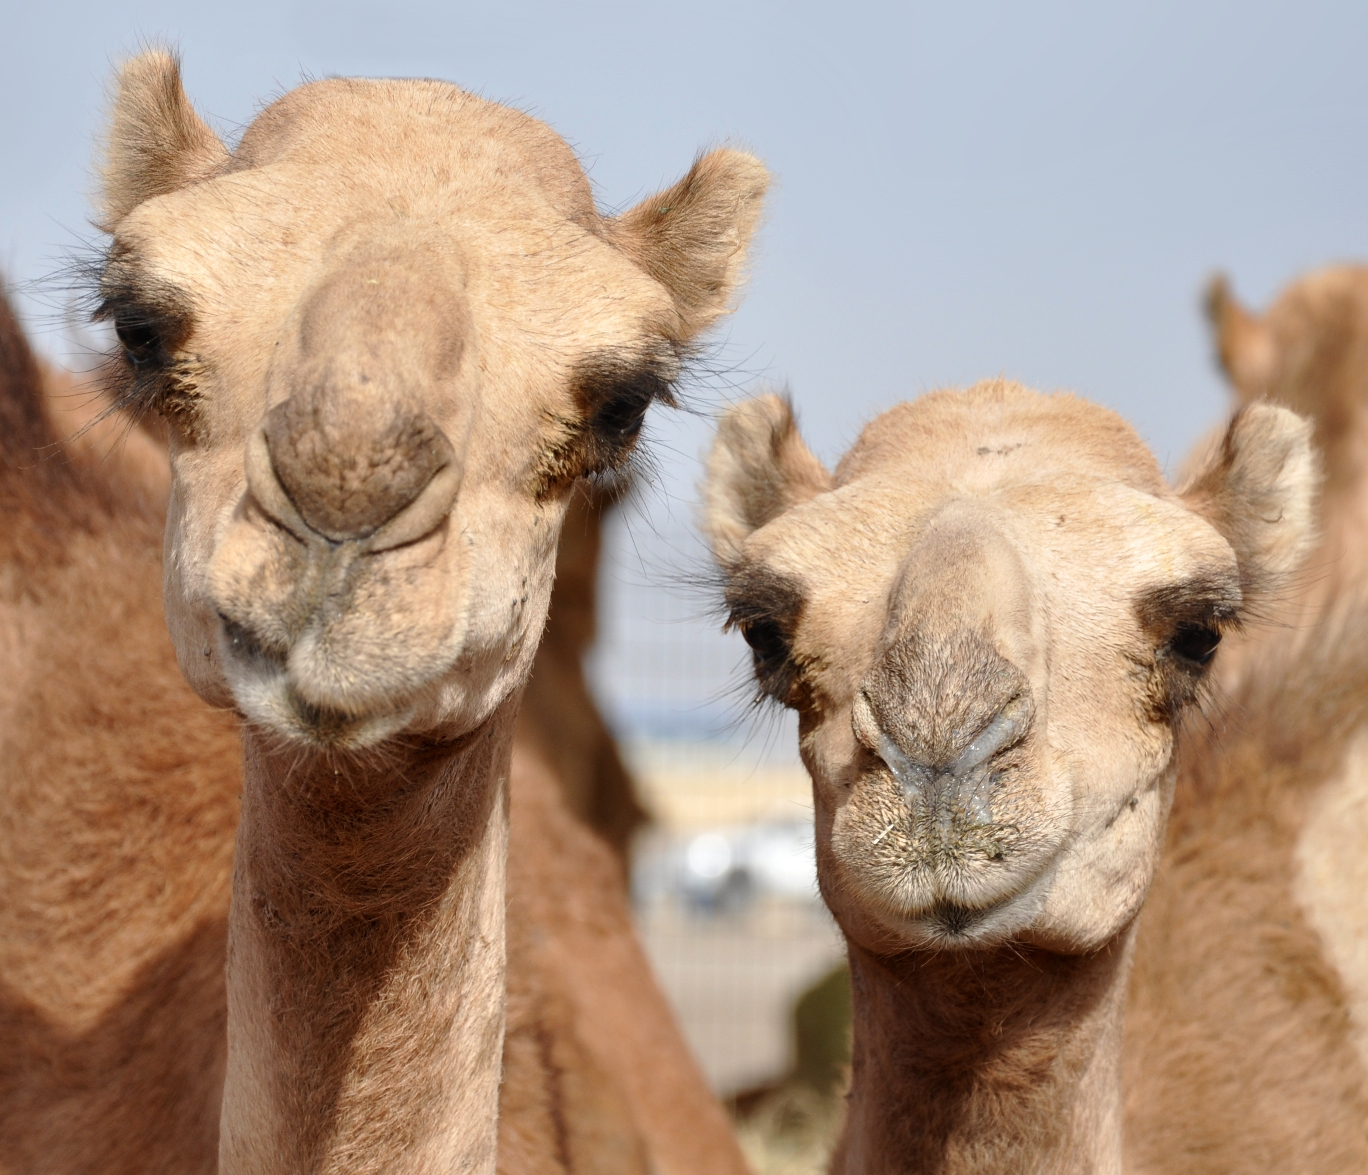 MERS found in Qatar camels